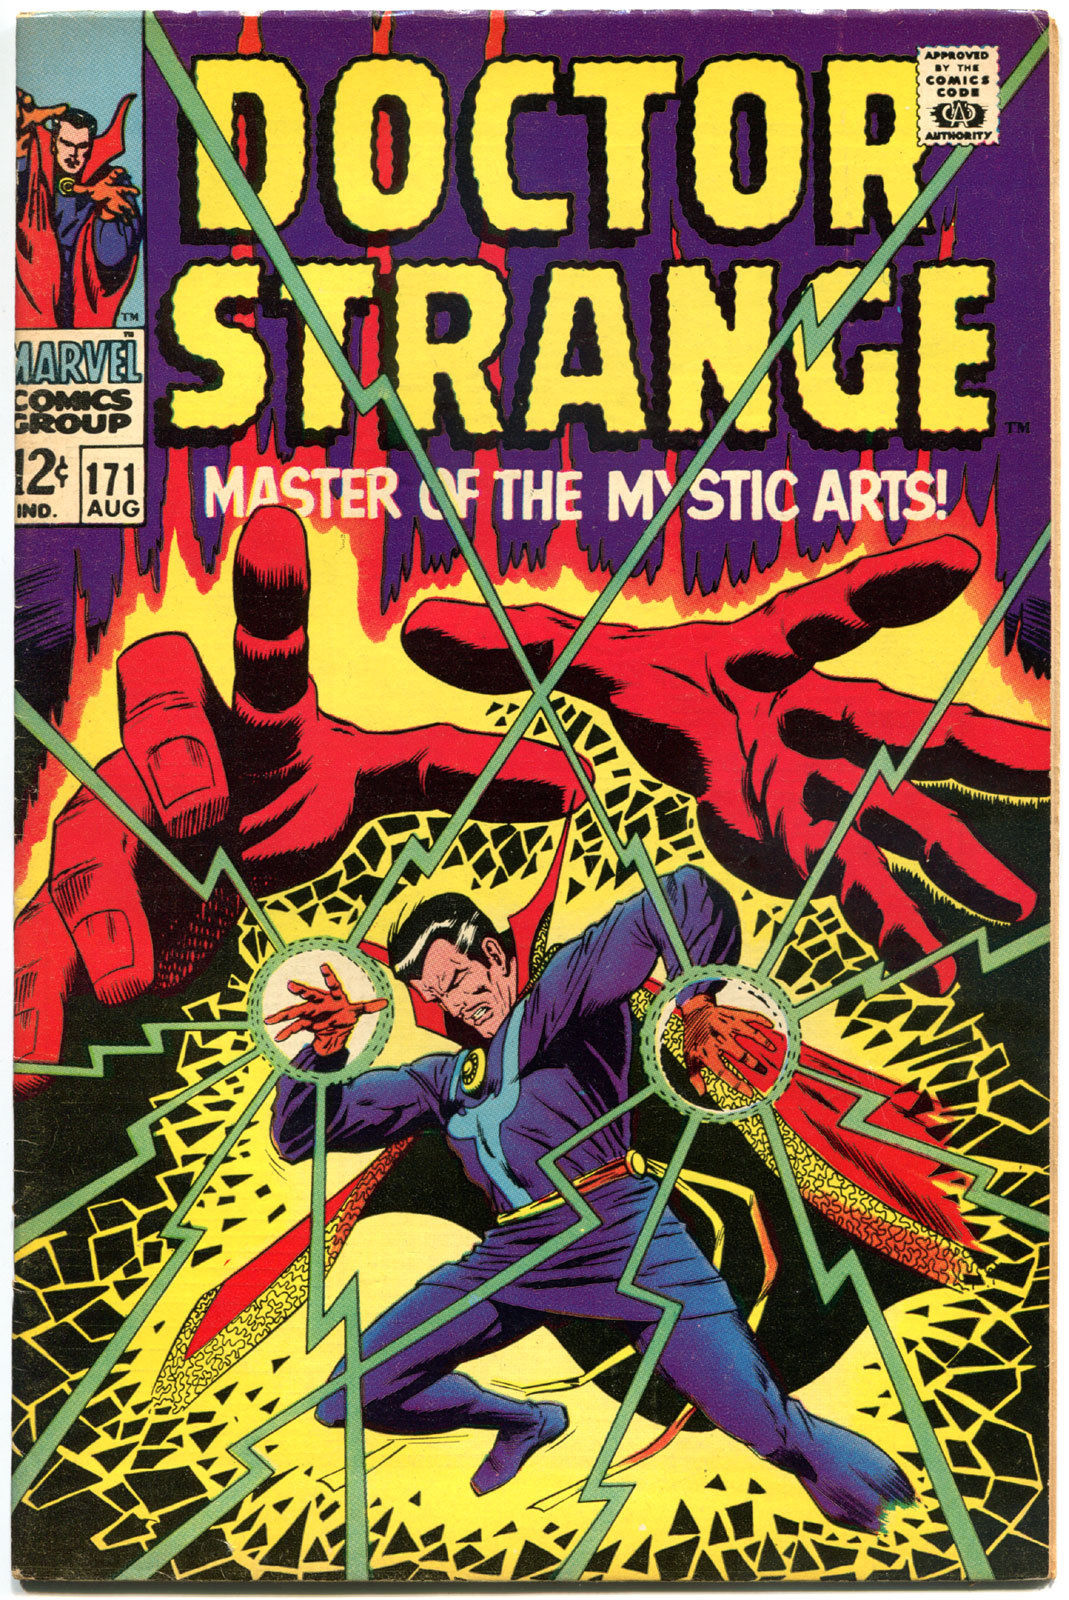 DOCTOR STRANGE #171, VF-, Mystic Arts, Tom Palmer,1968, more DS in store